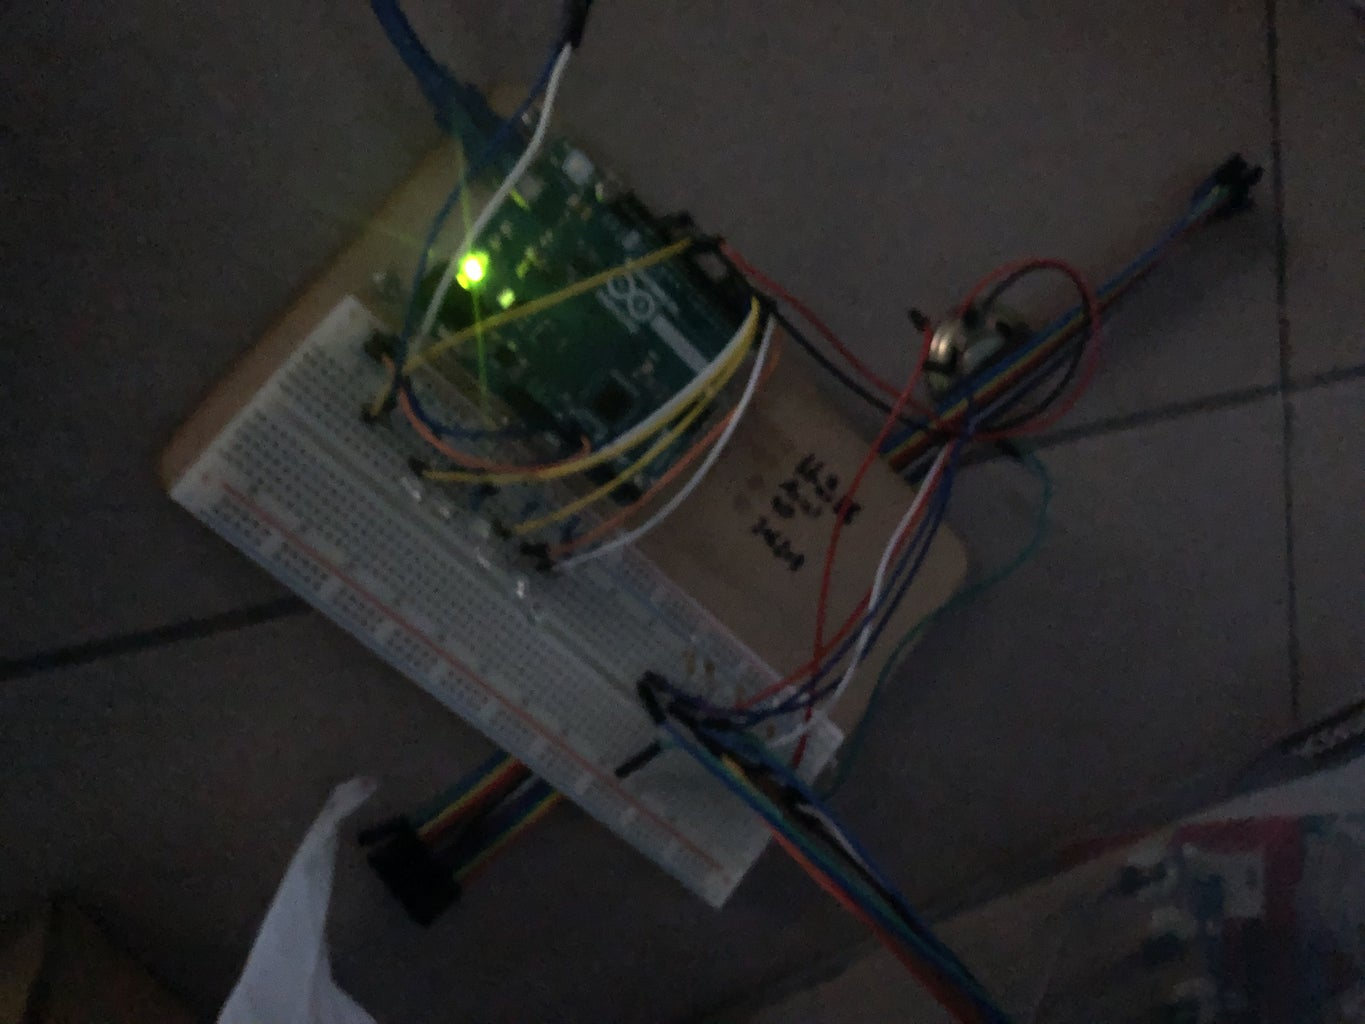 Connecting the LED Lights